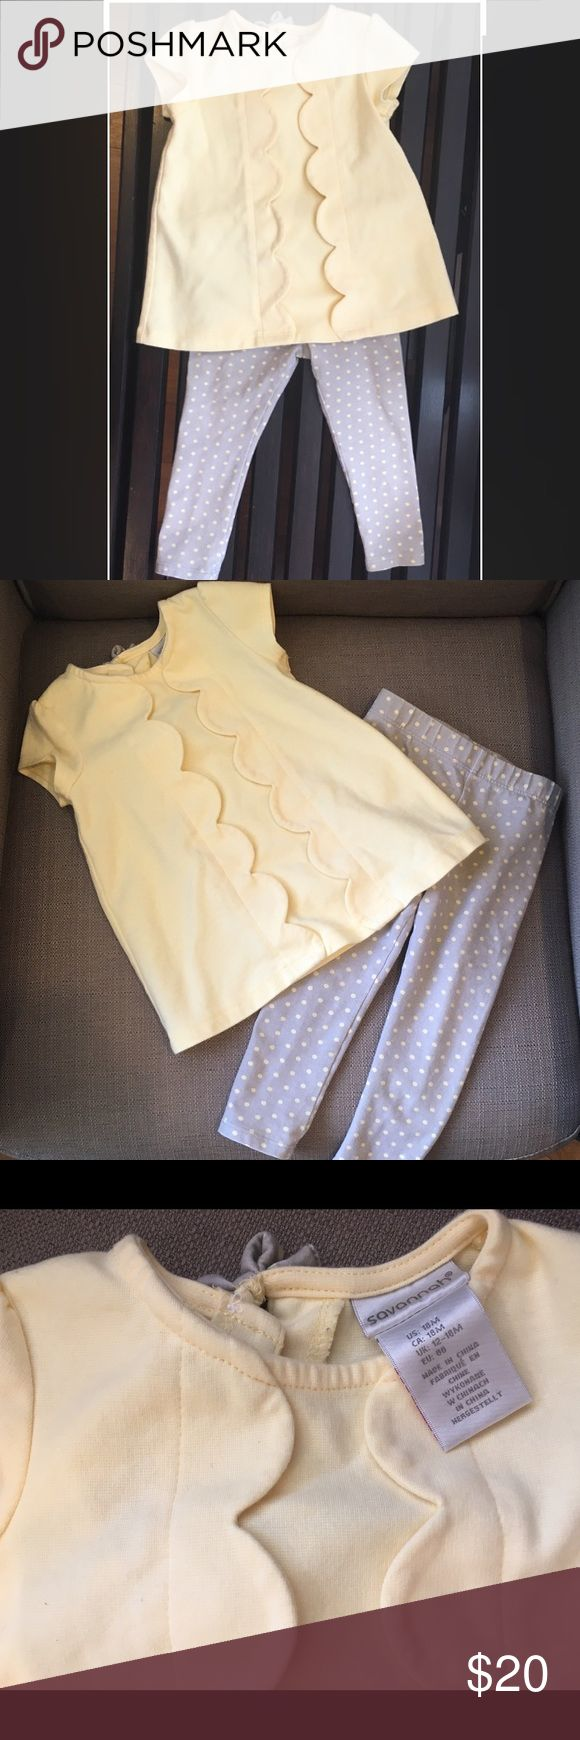 Super Cute Scalloped Yellow Top and Dot Pants 18 M LIKE NEW (Worn ONE time, perfect condition) Absolutely Adorable Two-Piece 18 Months Outfit, Swing Top and Leggings Pants. Perfect for Spring! LOVE this and sad it doesn't fit anymore. So pretty! Savannah Matching Sets